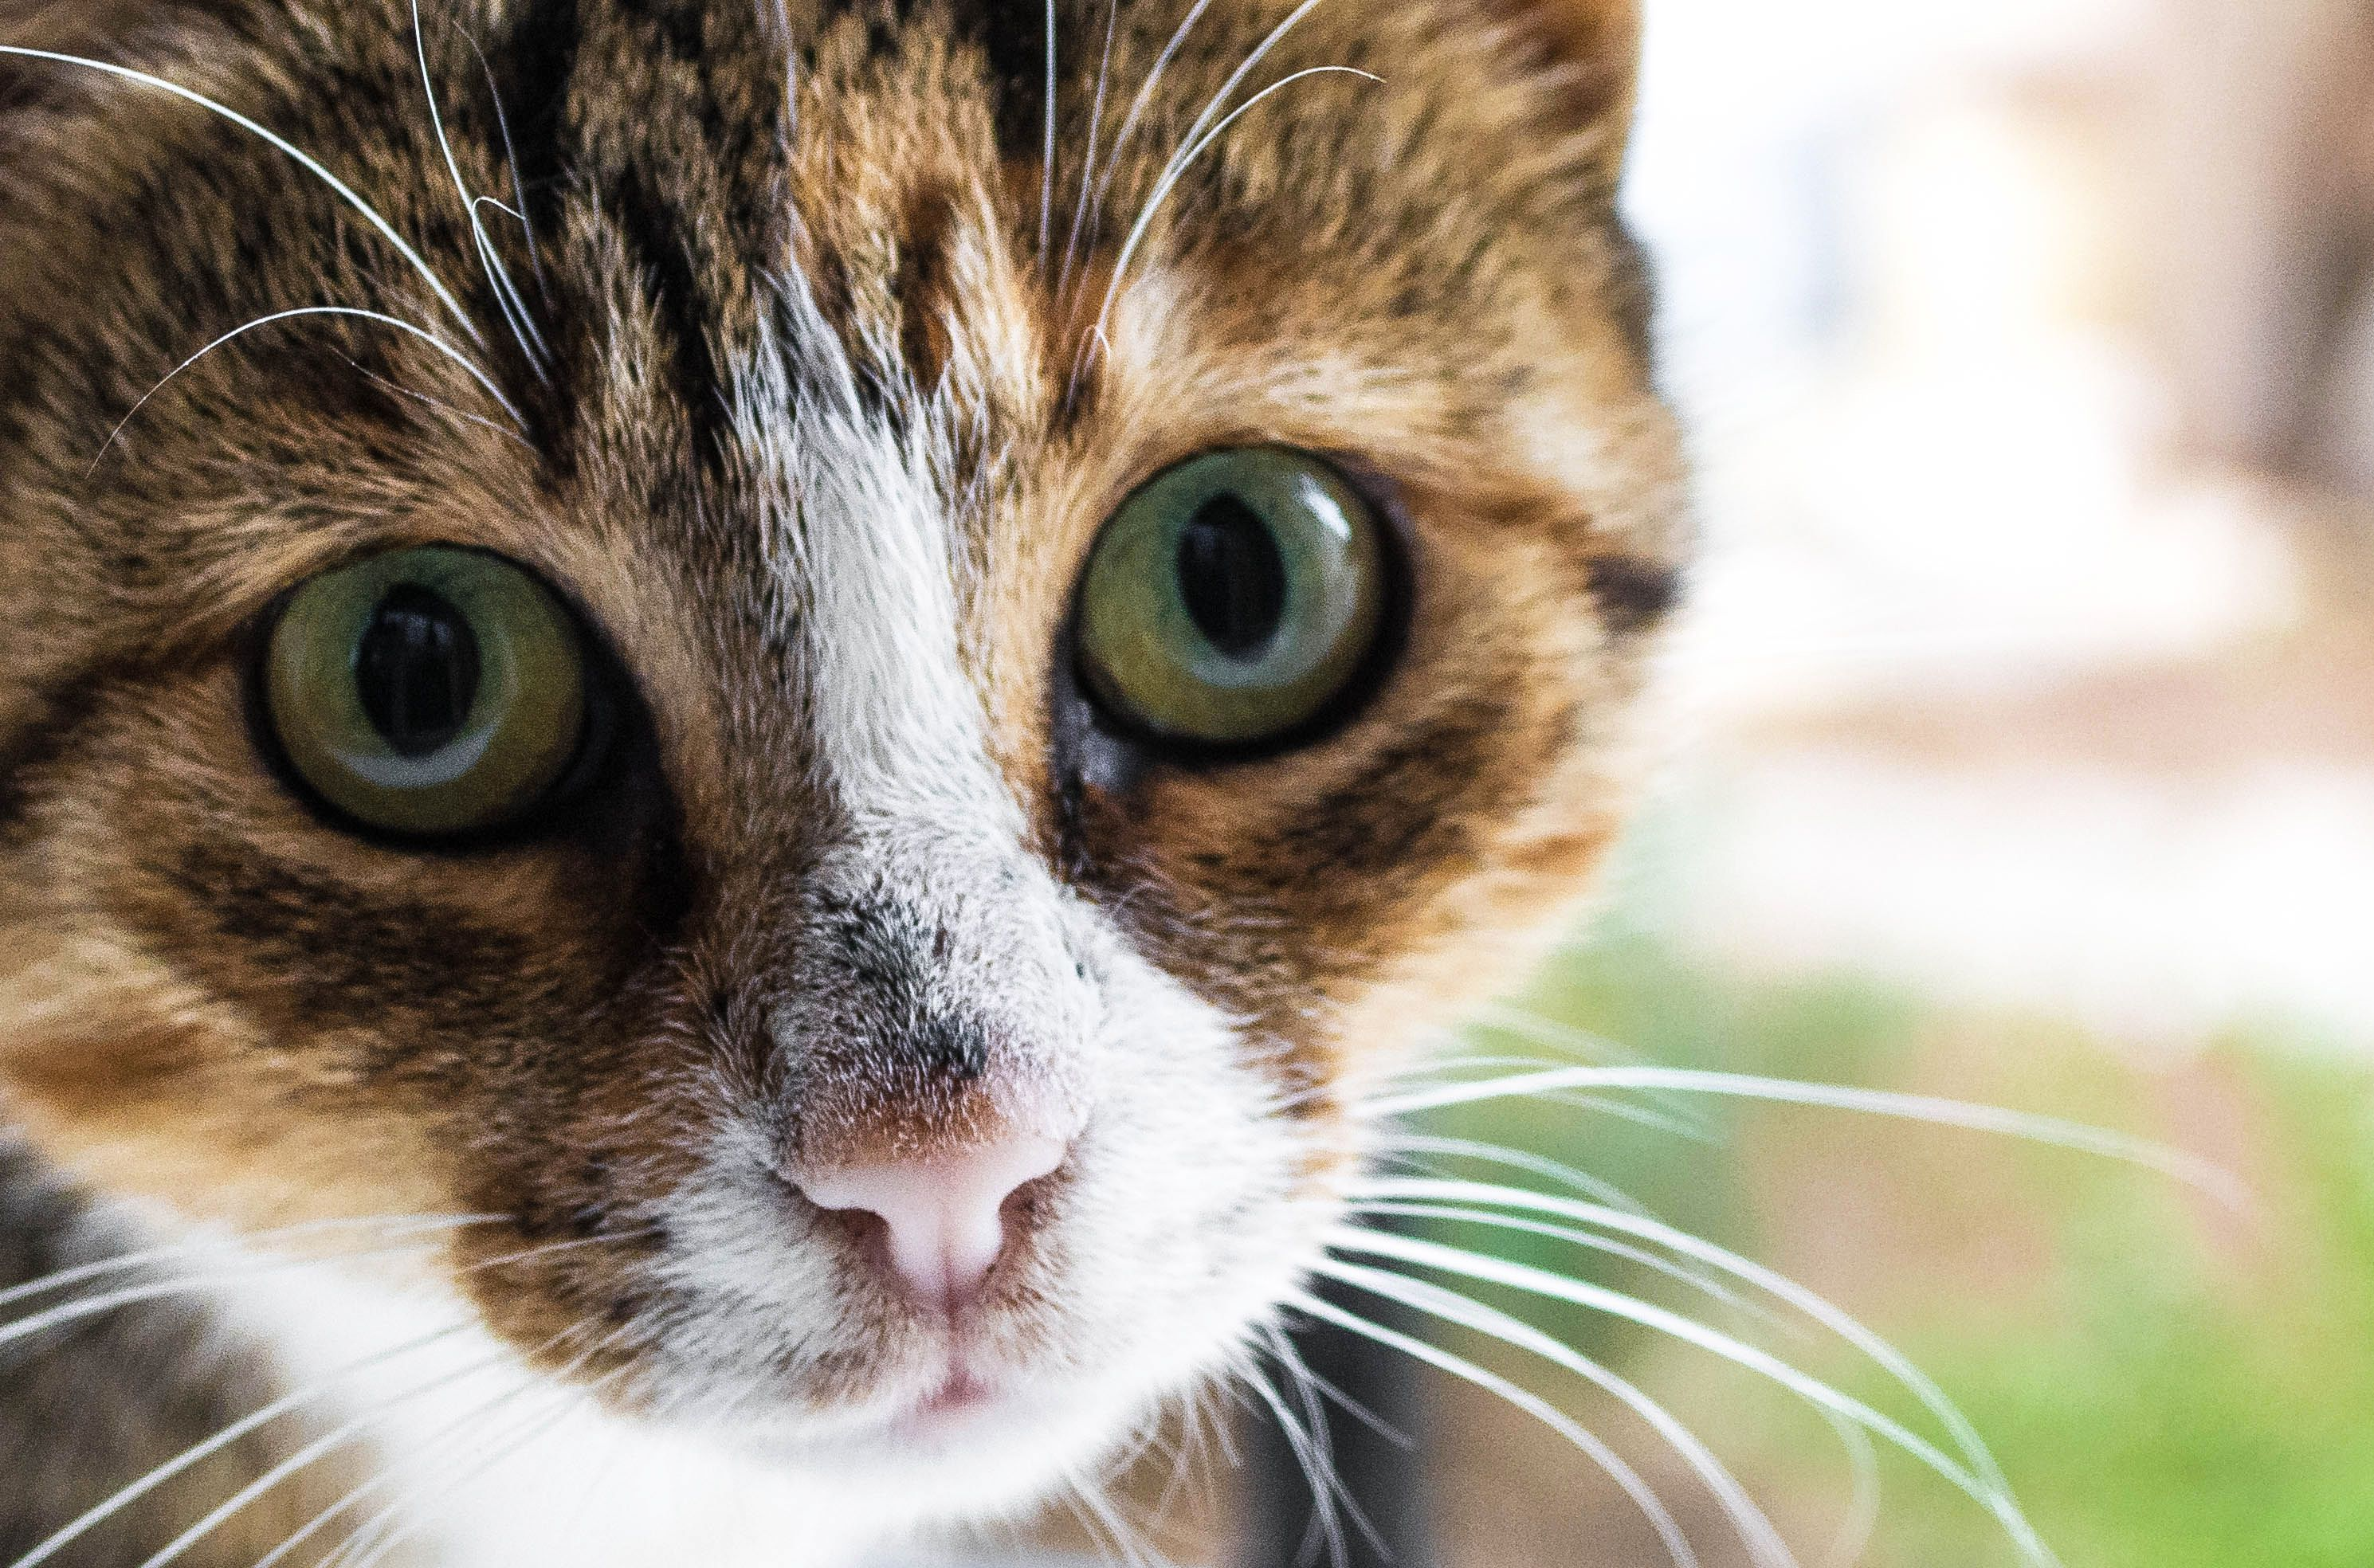 How To Treat Feline Infectious Peritonitis In Cats